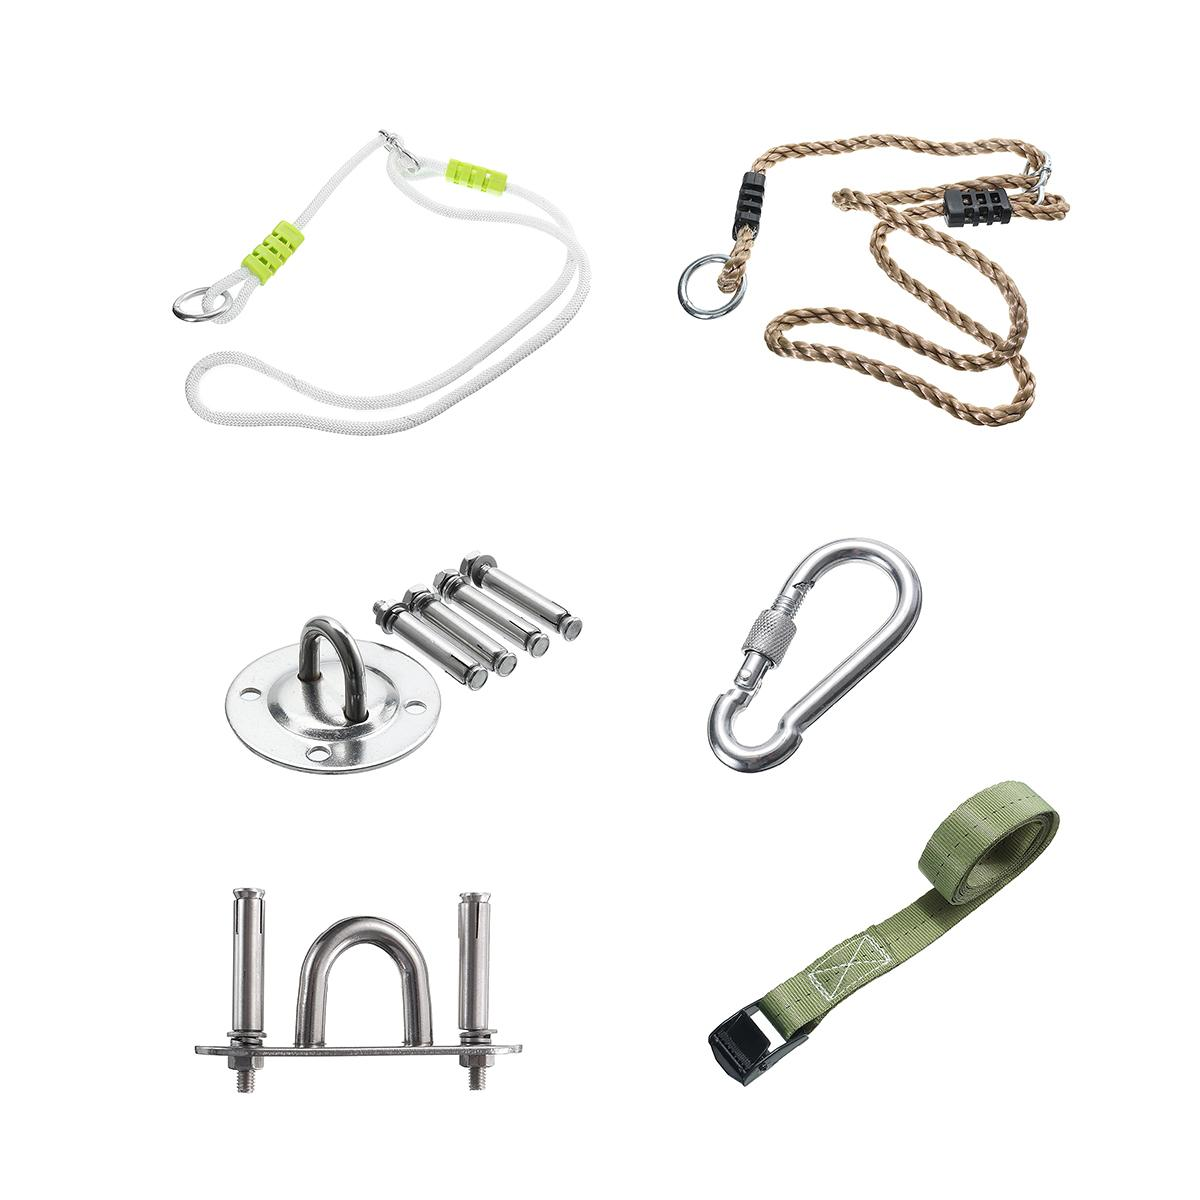 6 Types Travel Camping Hammock Parts Outdoor Plastic Tree Swing Conversion Extension Rope Kit Tools Swing Accessories